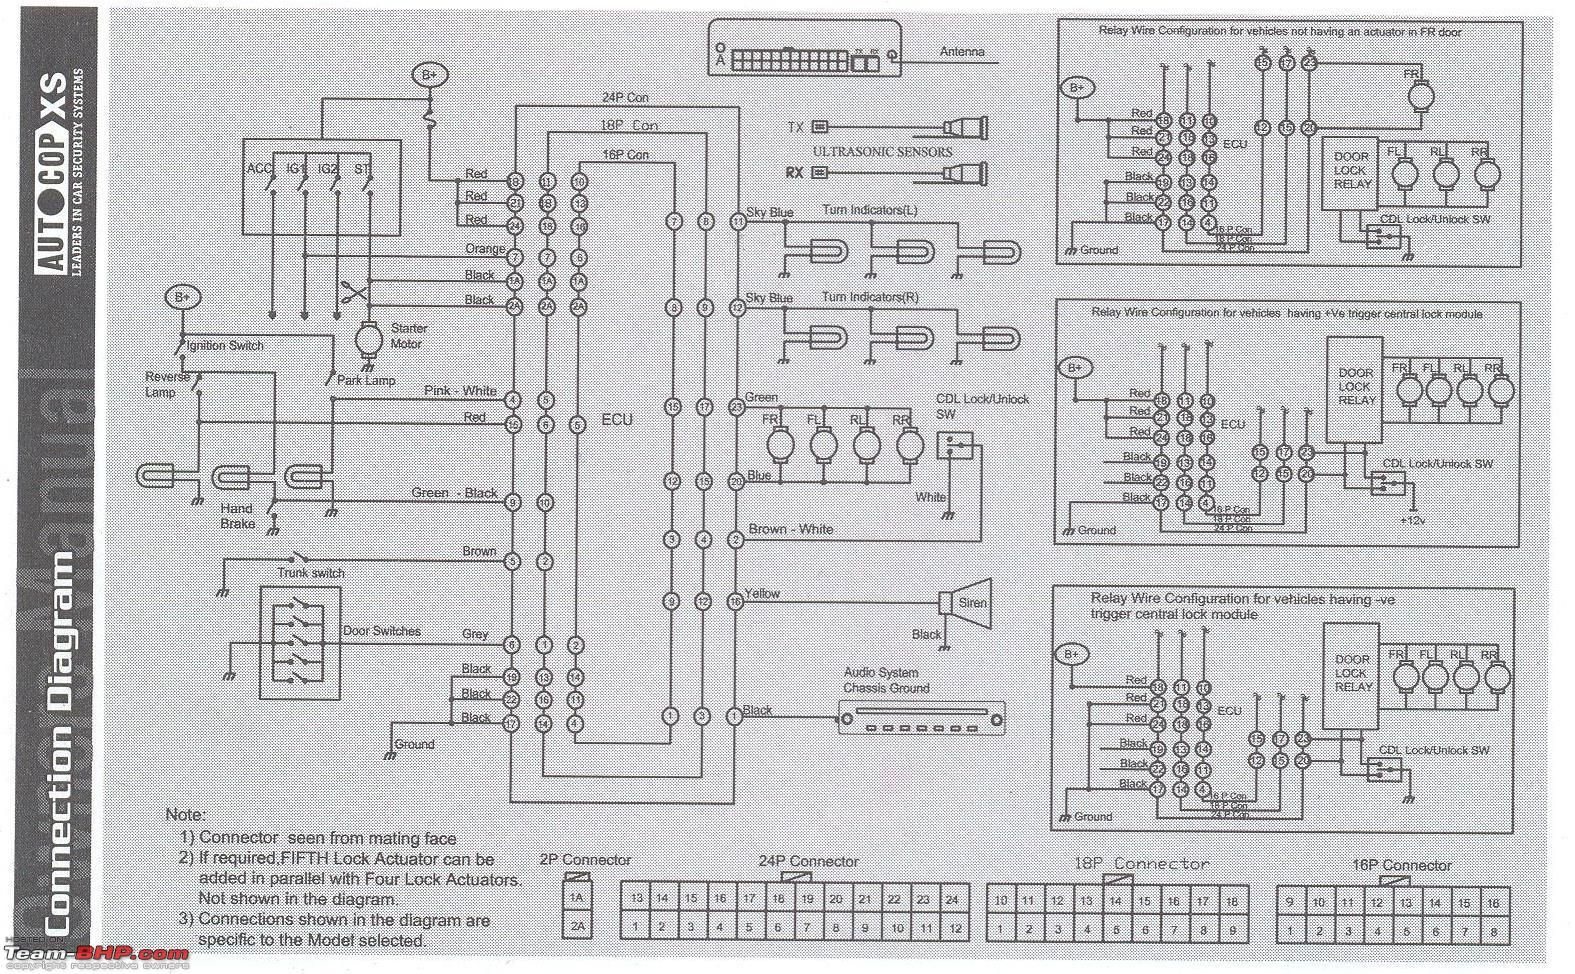 Electrical Wiring Diagram Of Maruti 800 Car